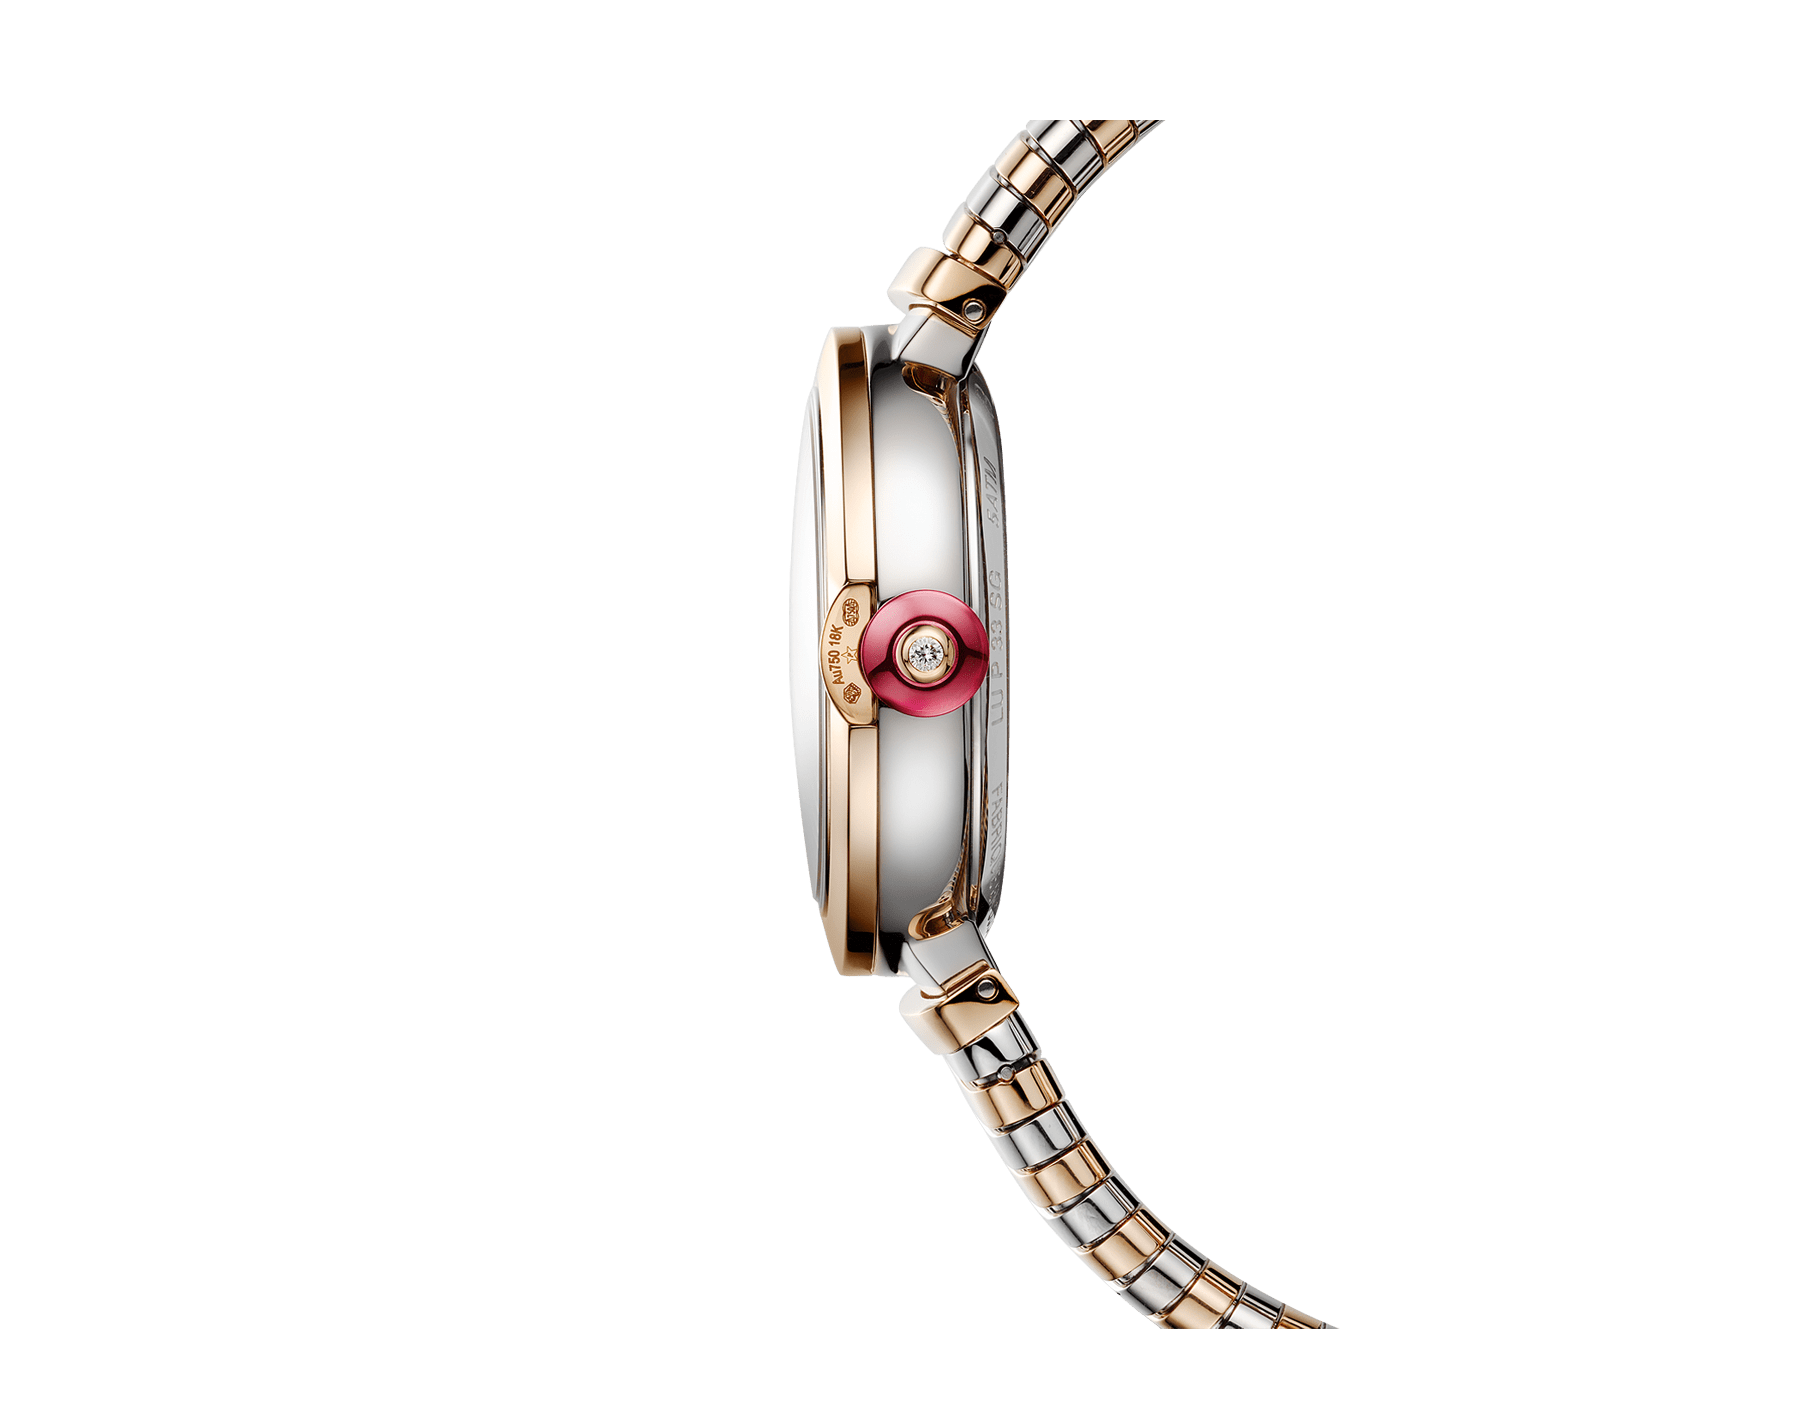 LVCEA watch with stainless steel case, 18 kt rose gold bezel, red lacquered dial, diamond indexes and tubogas bracelet in 18 kt rose gold and stainless steel 103123 image 3